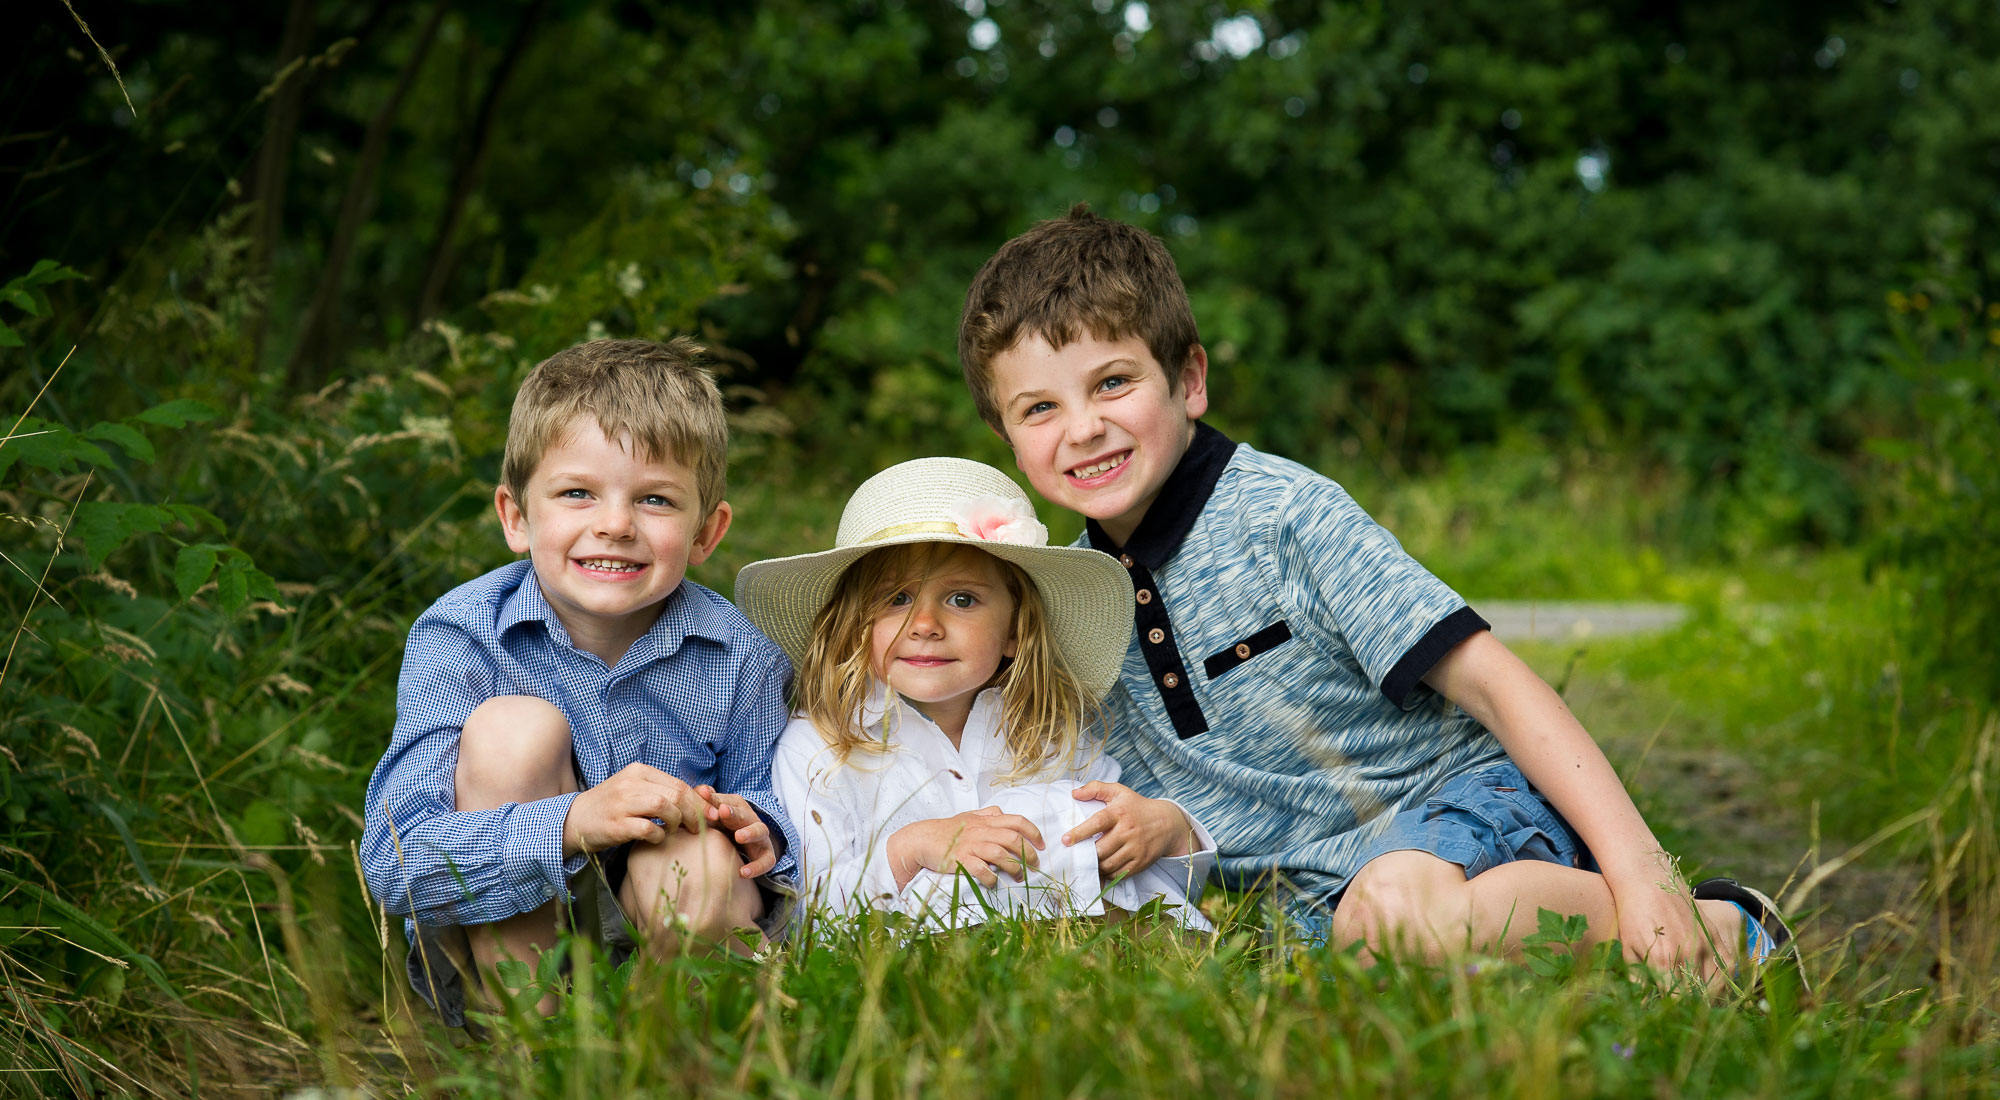 Family siblings sitting in the grass